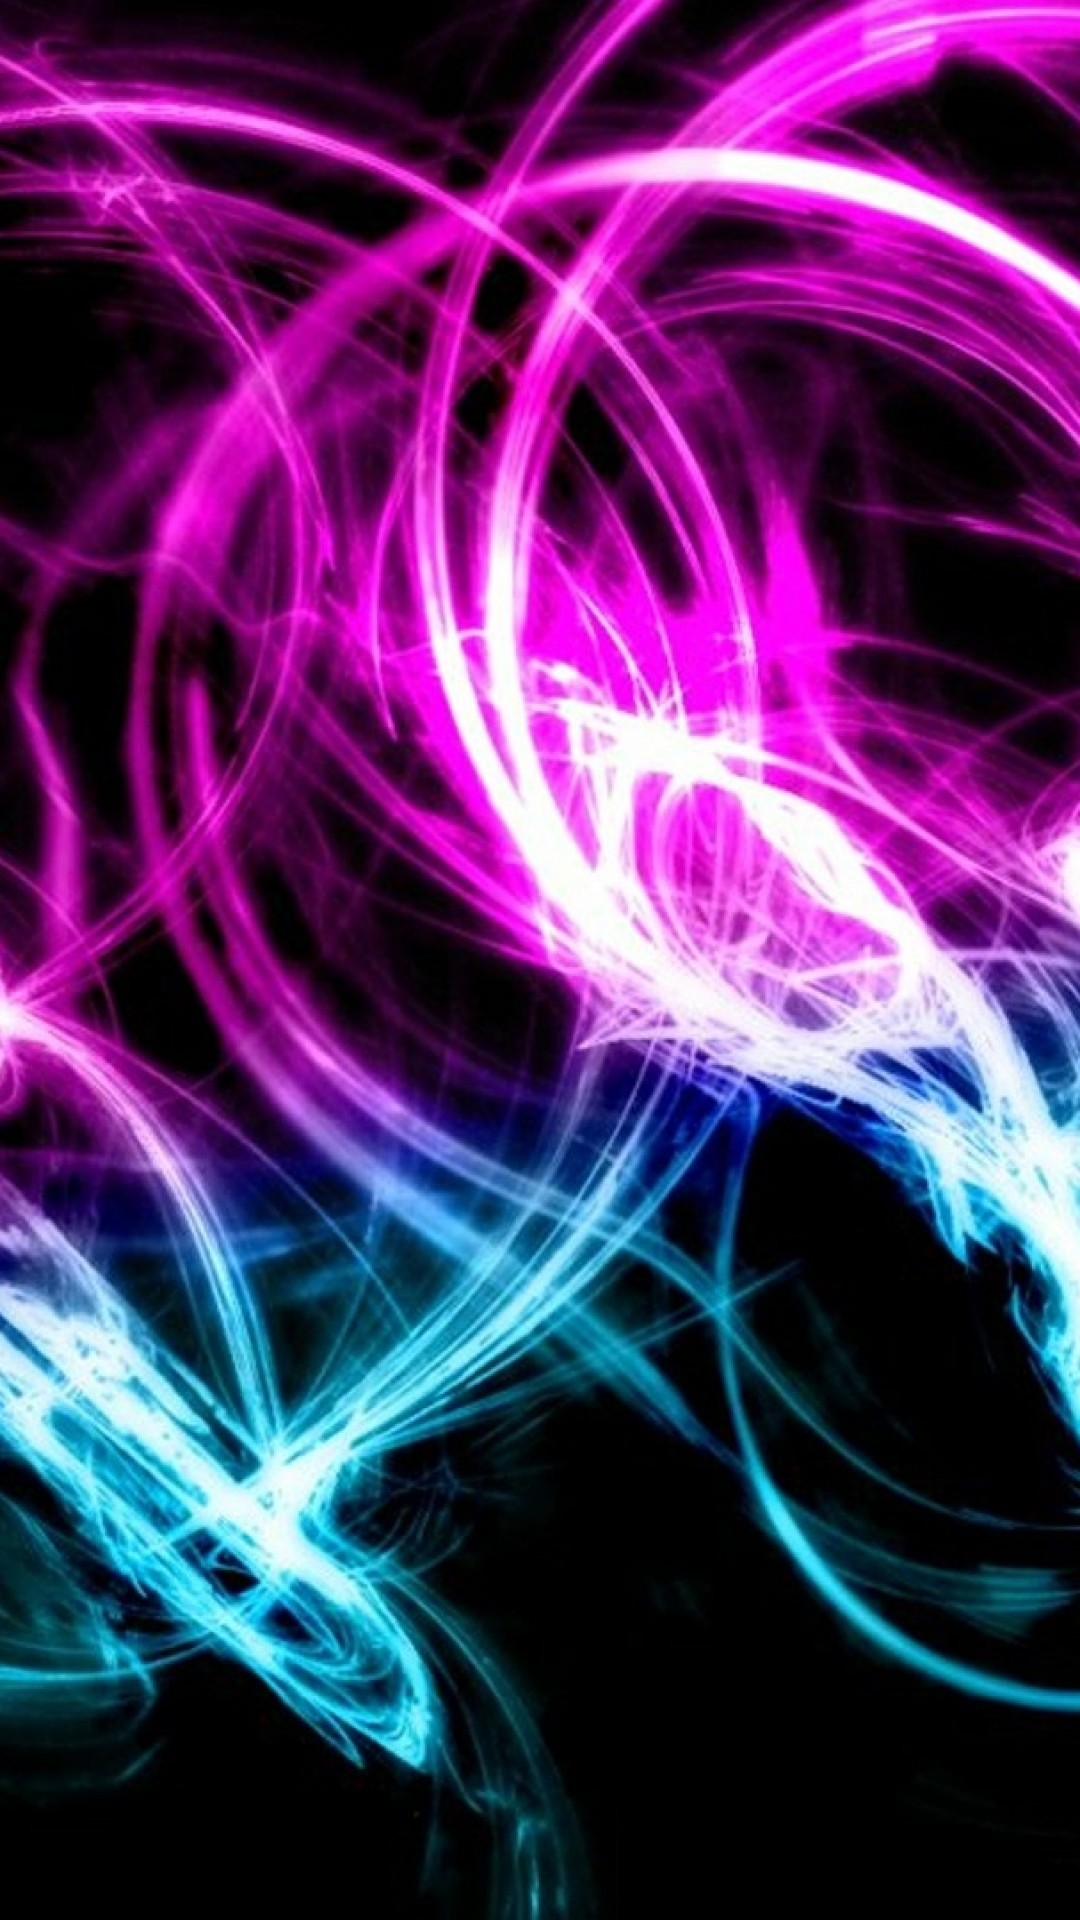 Preview wallpaper neon, patterns, cluster, background 1080×1920